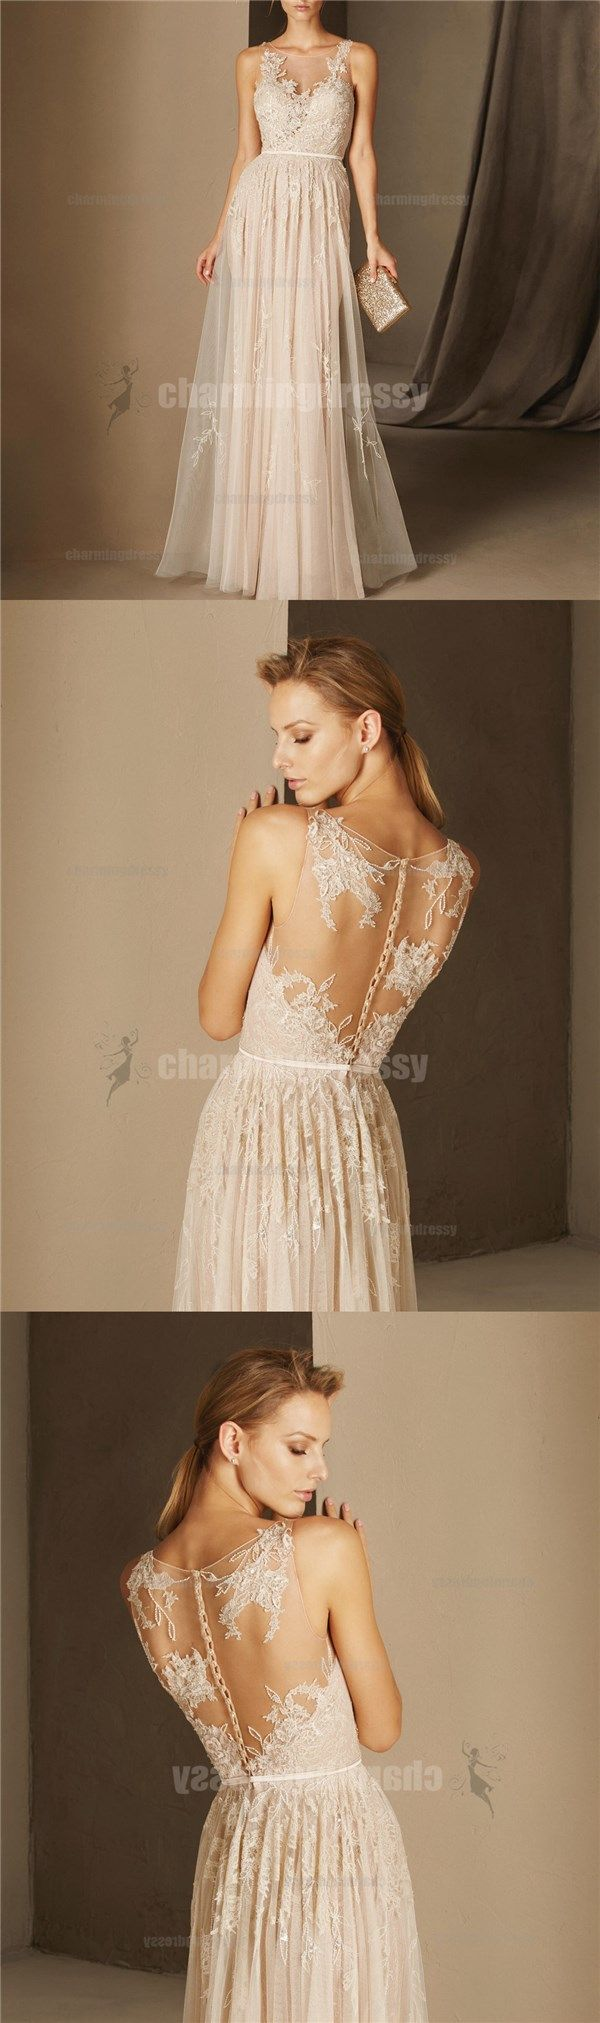 Scoop tulle a line lace fairy elegant prom dresses evening dresses